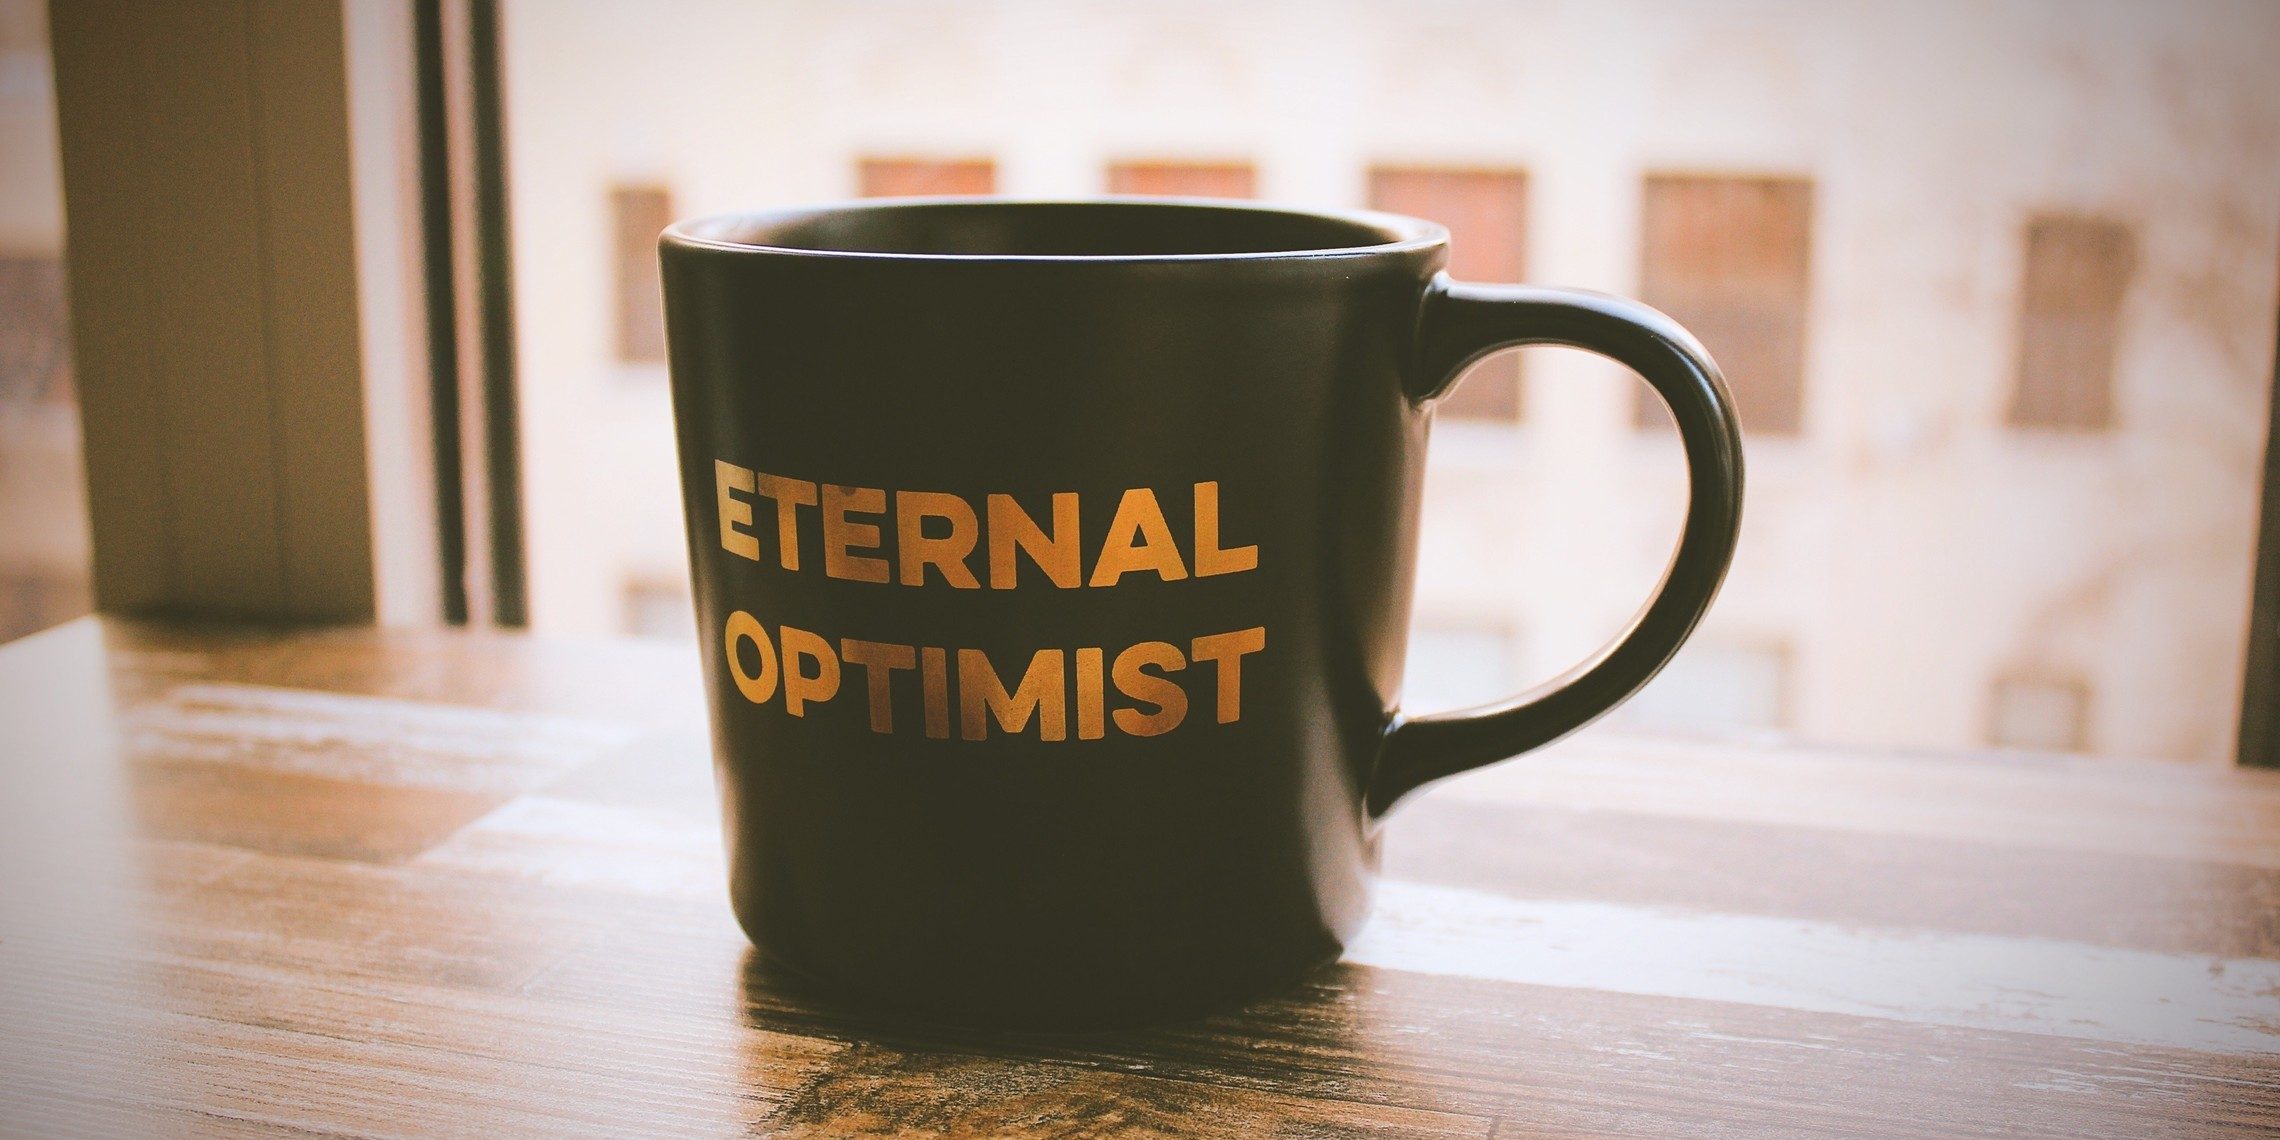 Eternal Optimist Unsplash